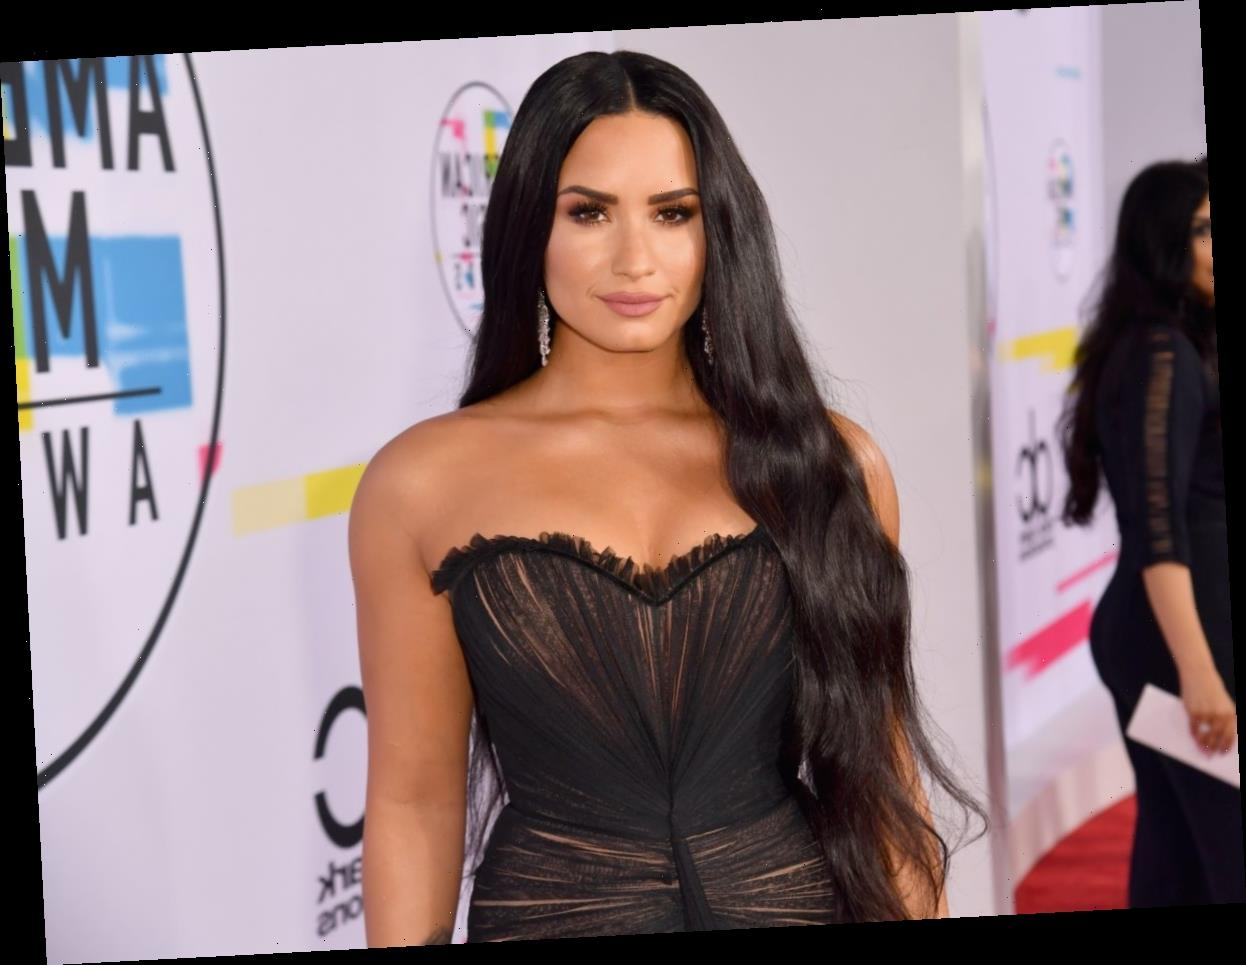 Demi Lovato Says Writing New Music Has Been 'a Very Cathartic and Therapeutic Experience' for Her Following Max Ehrich Split